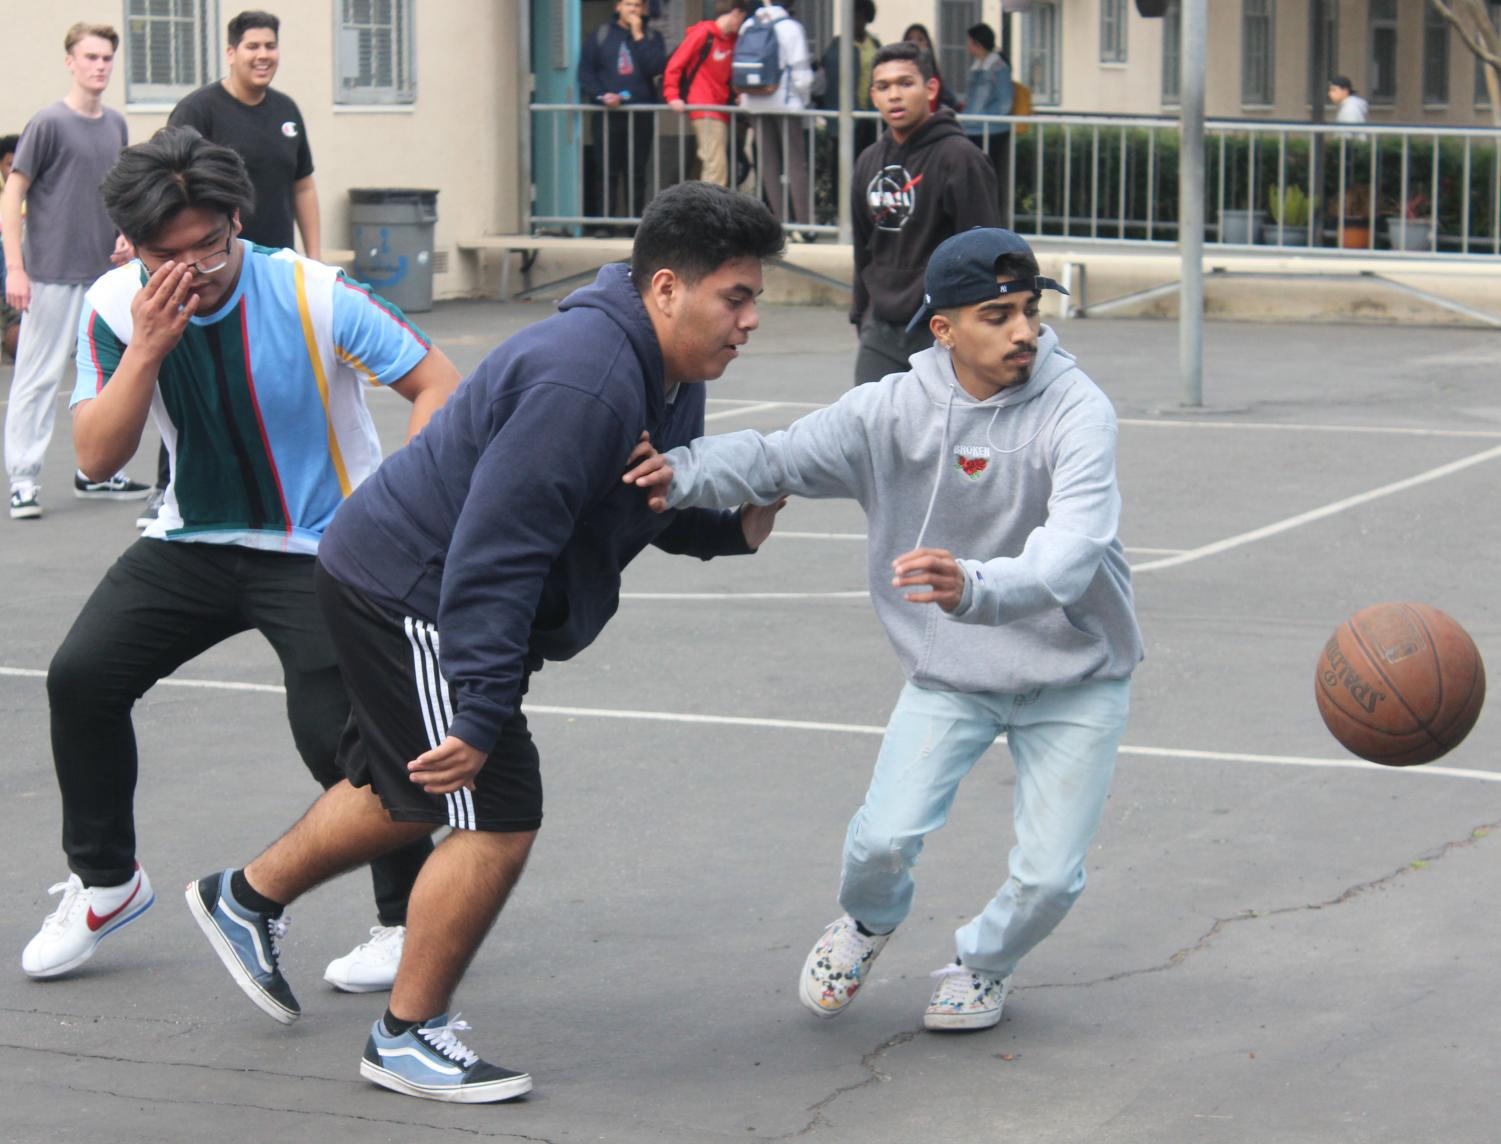 Juniors+Joseph+Danan%2C+Evan+Vargas+and+sophomore+Om+Patel+go+for+a+loose+ball+in+a+basketball+game+during+Fiesta+Friday+on+March+1.